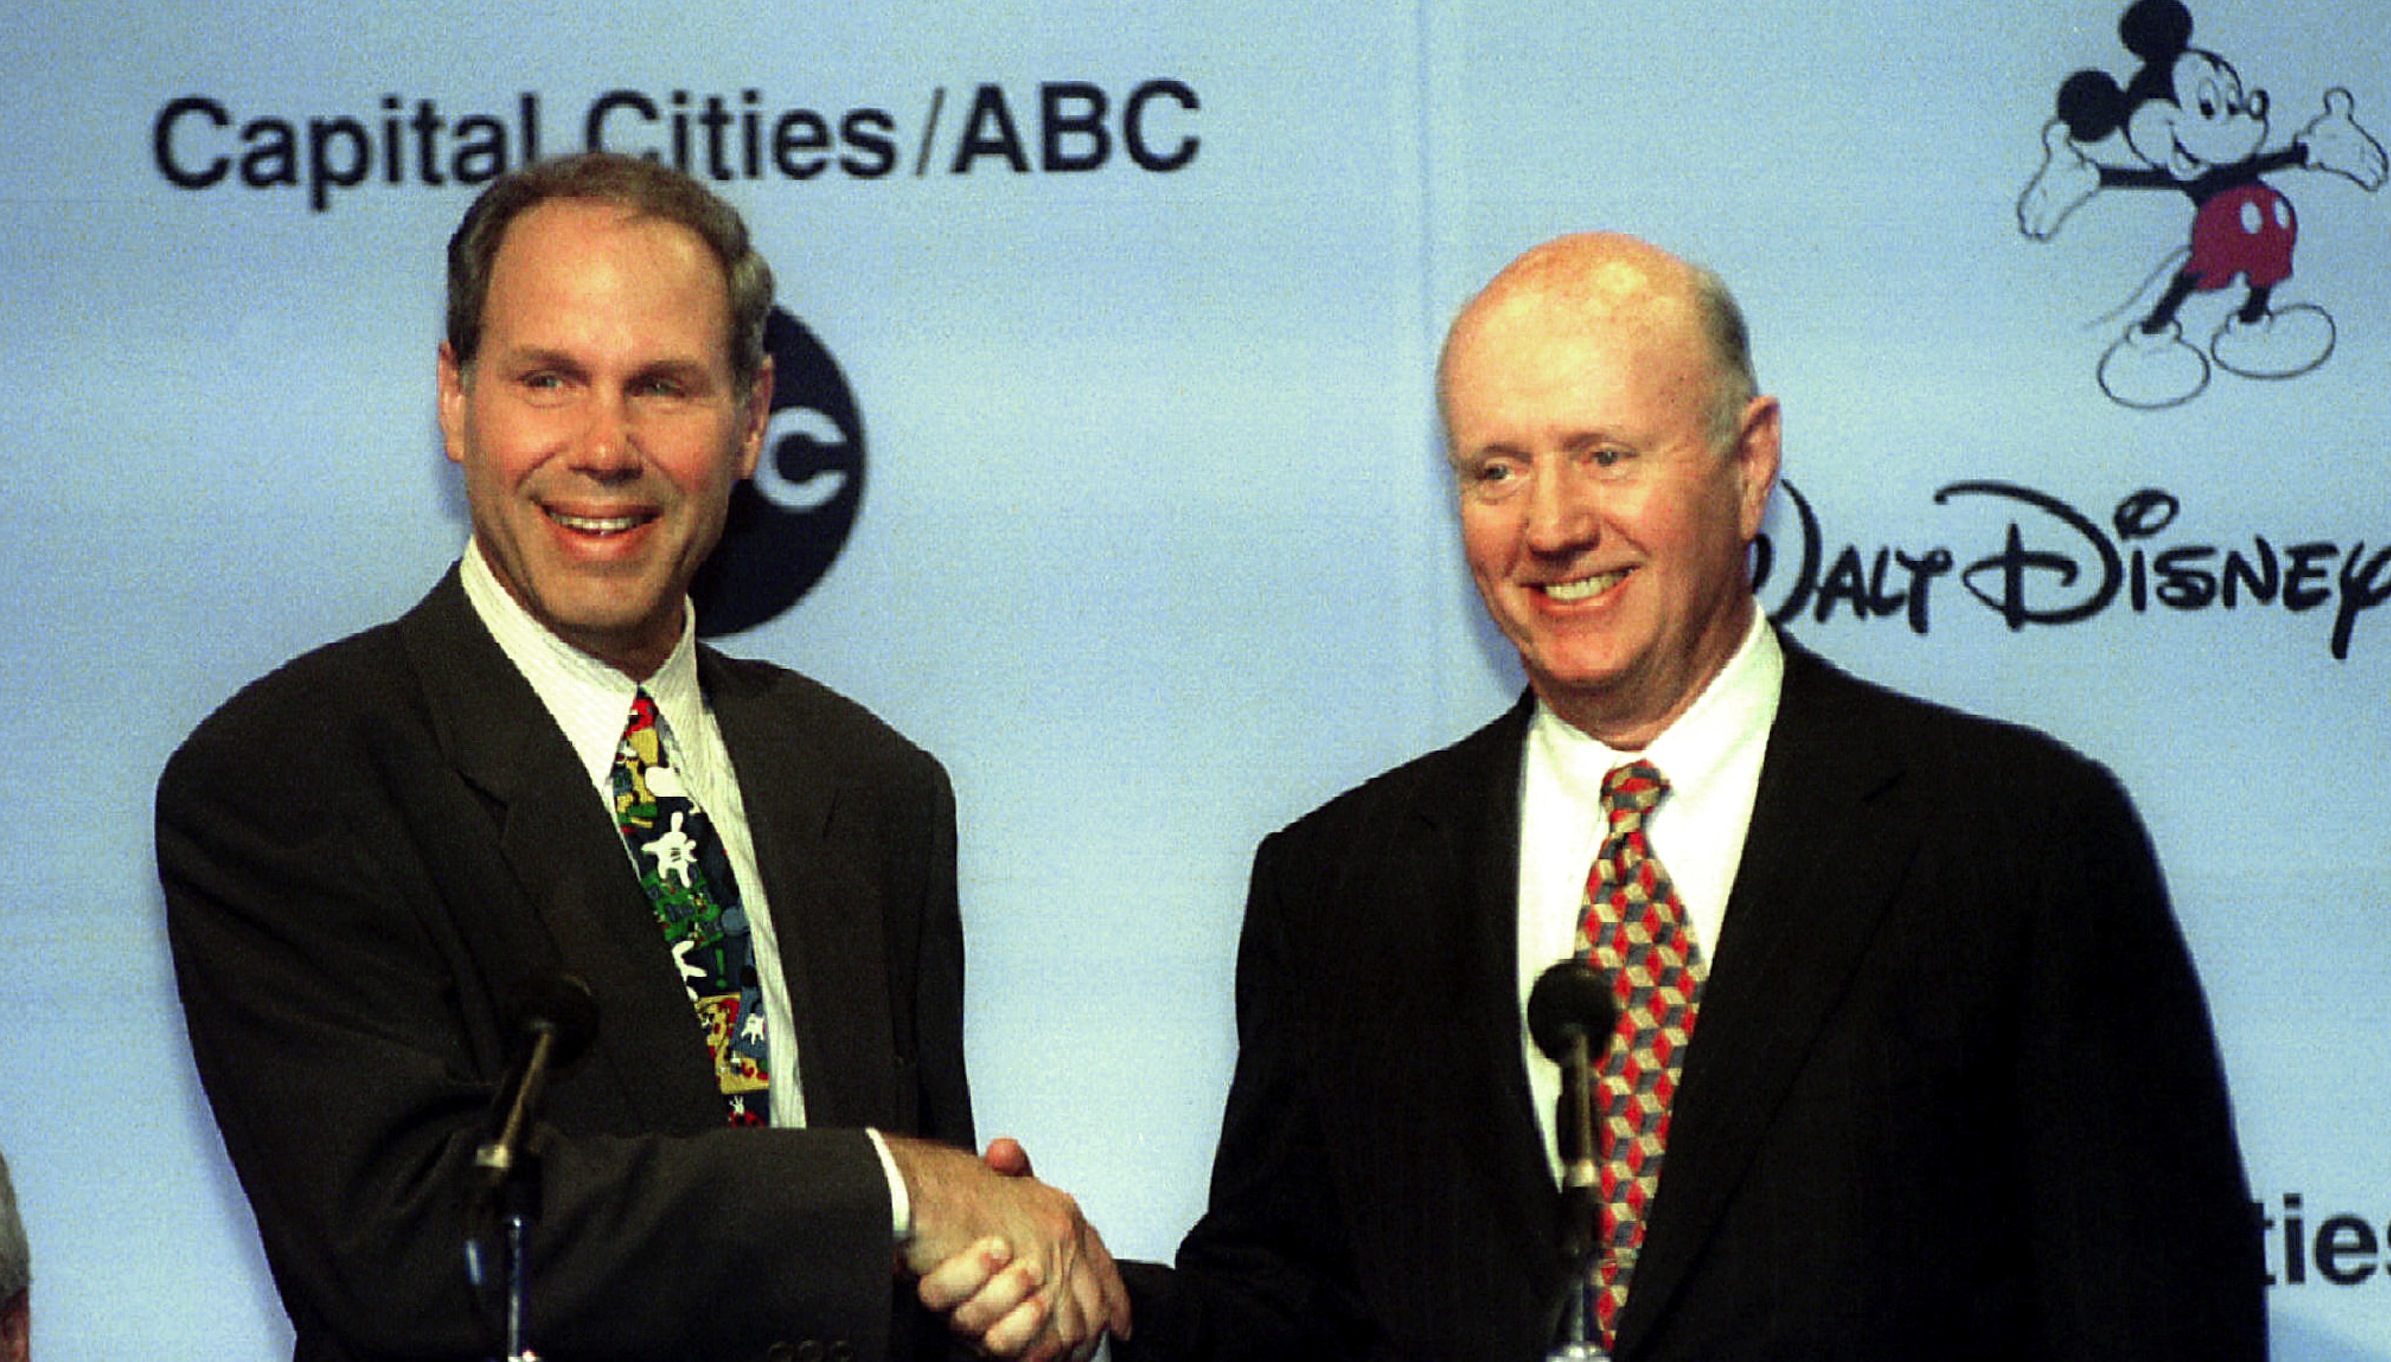 Walt Disney Company chairman Michael D. Eisner (L) shakes hands with Capital Cities/ABC chairman Thomas S. Murphy at a press conference in New York July 31 held to announce the merger of the two entertainment companies. Disney said it would pay $19 billion for Capital    Cities/ABC in a move that took [Hollywood and Wall Street] by surprise. - RTXFUFF